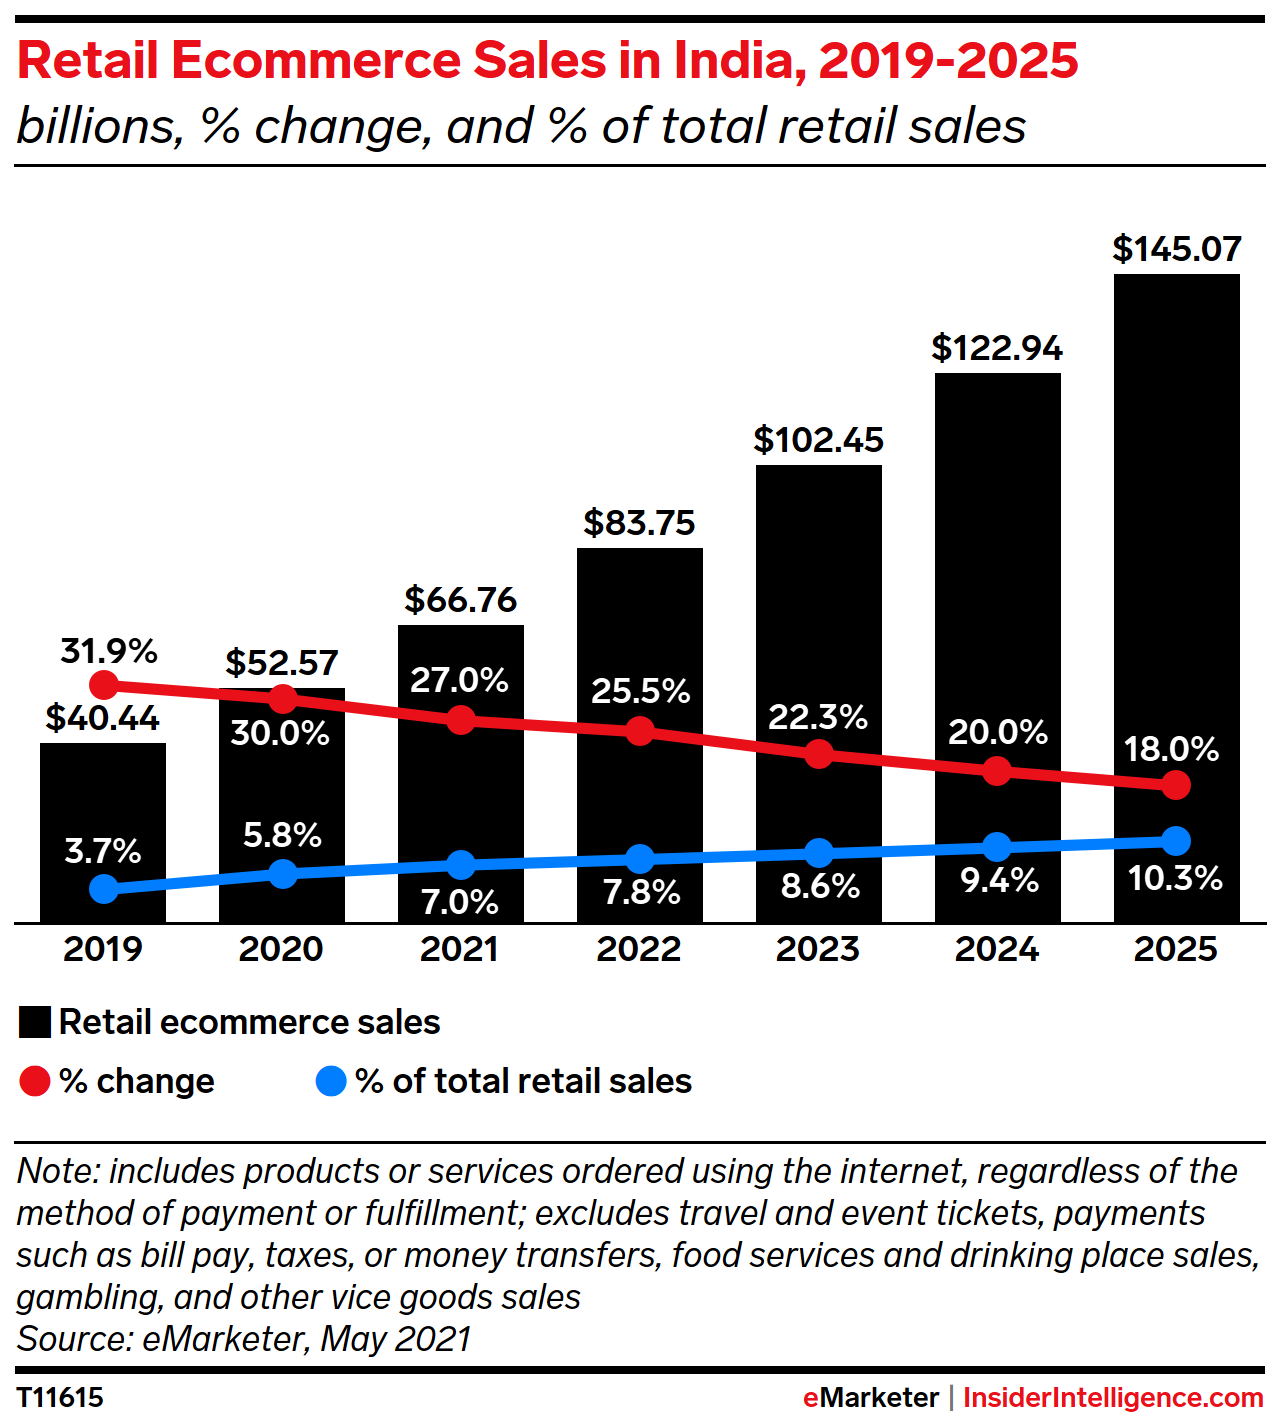 Retail Ecommerce Sales in India, 2019-2025 (billions, % change, and % of total retail sales)